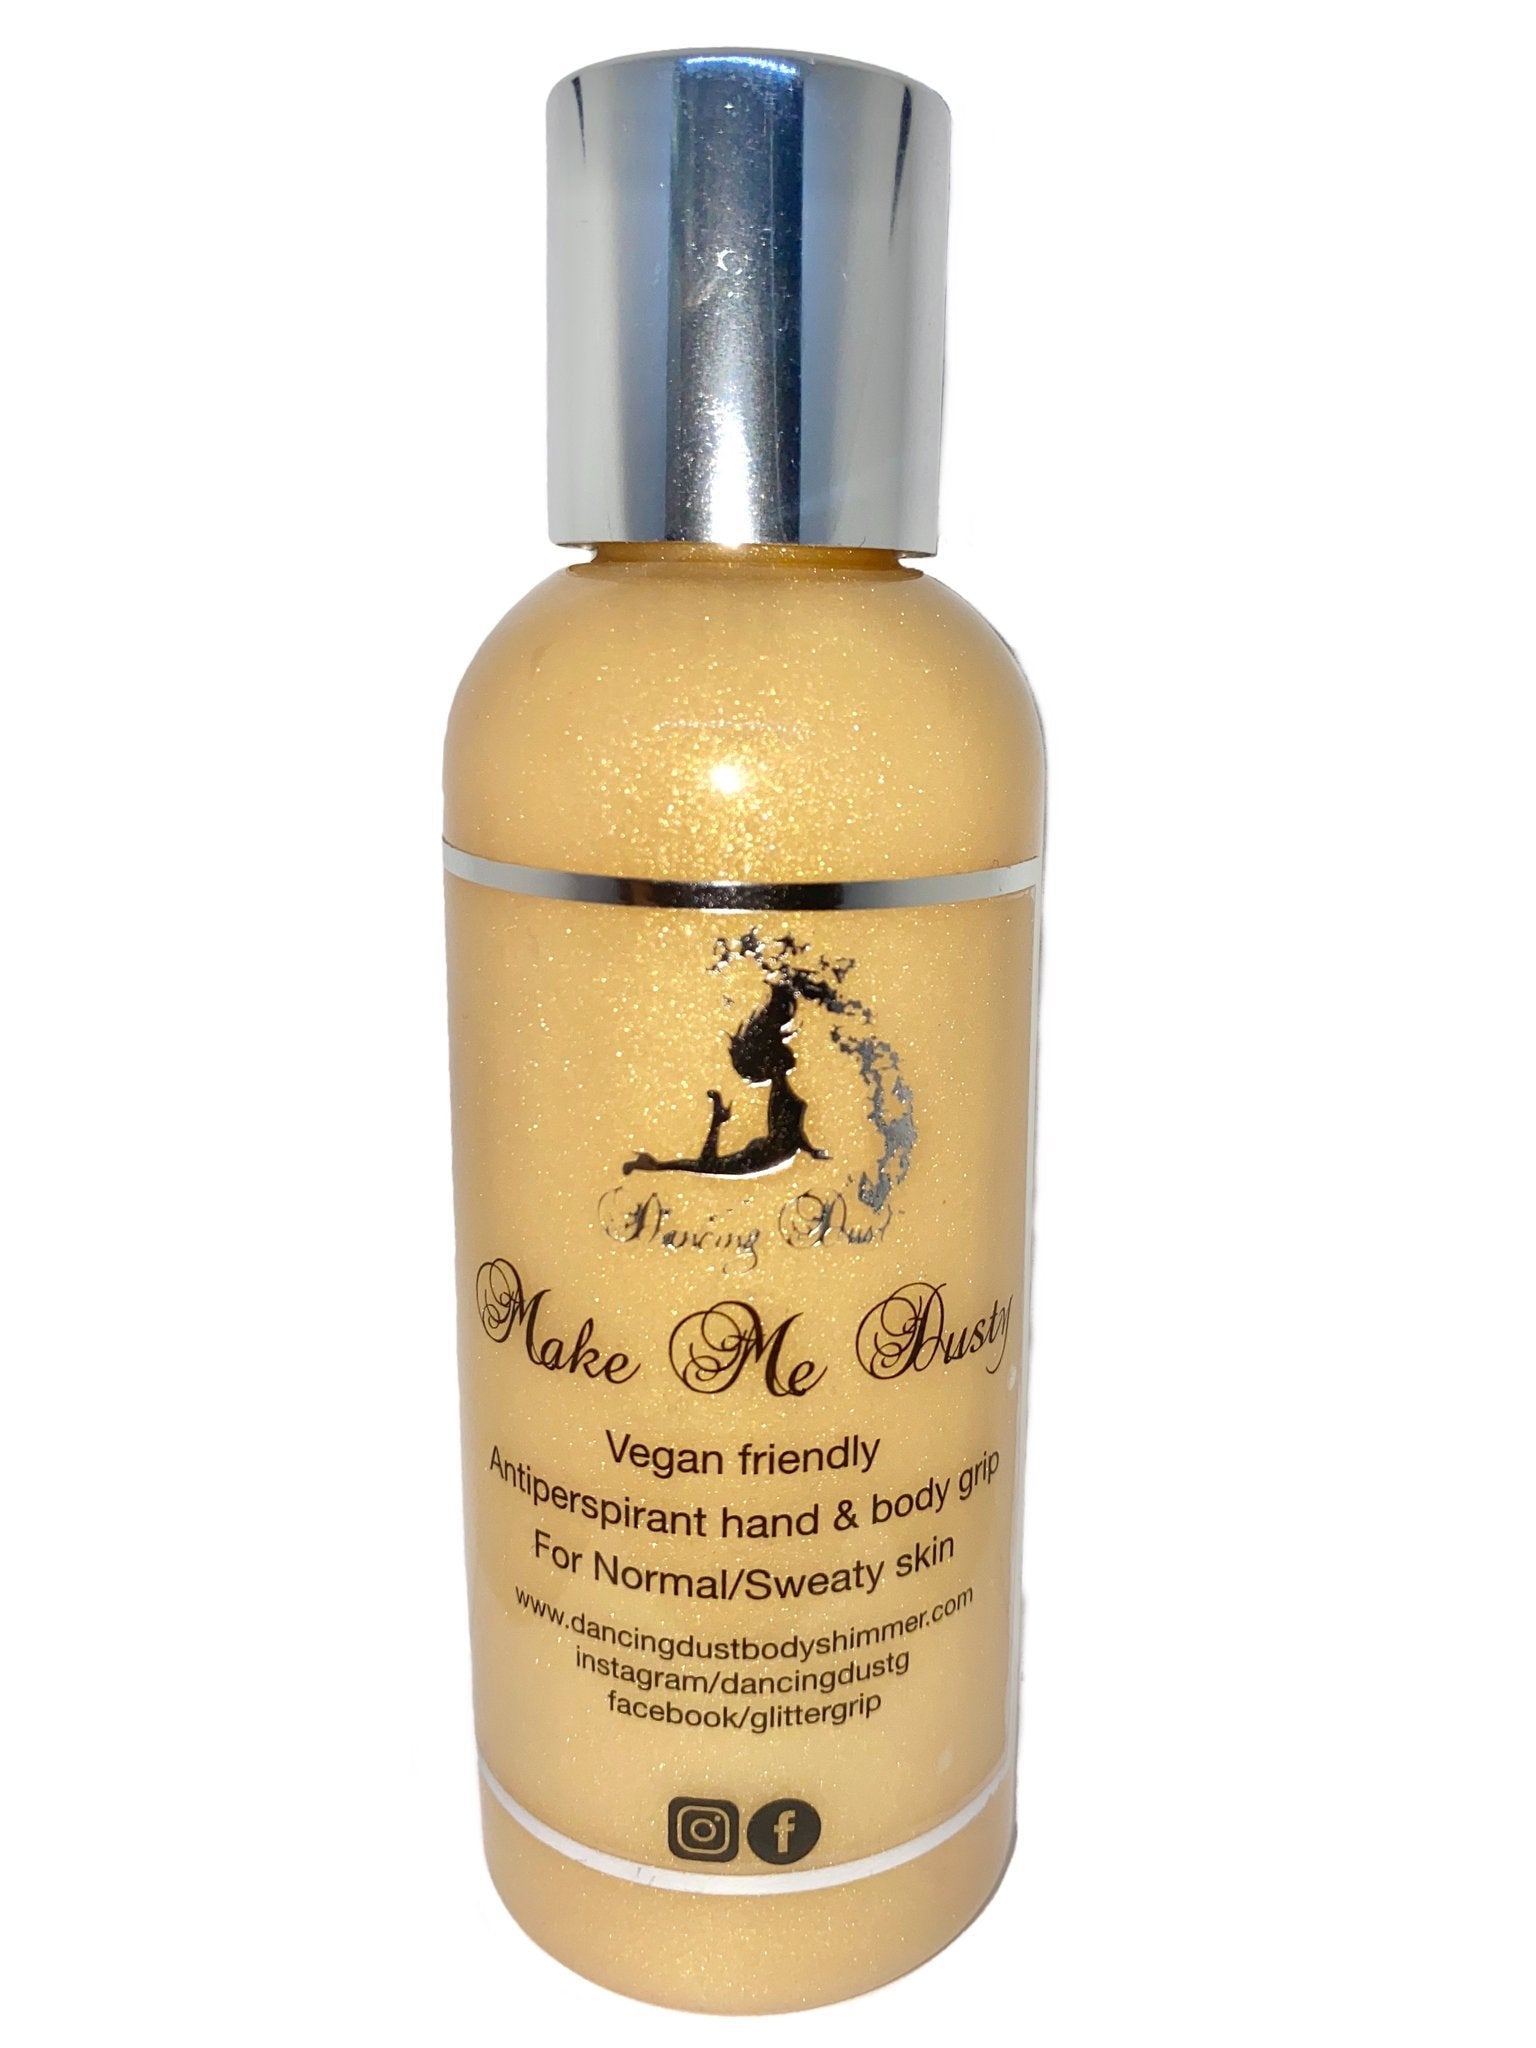 Dancing Dust- Make me Dusty - Antiperspirant pole grip aid for normal/sweaty skin 80ml - Gold